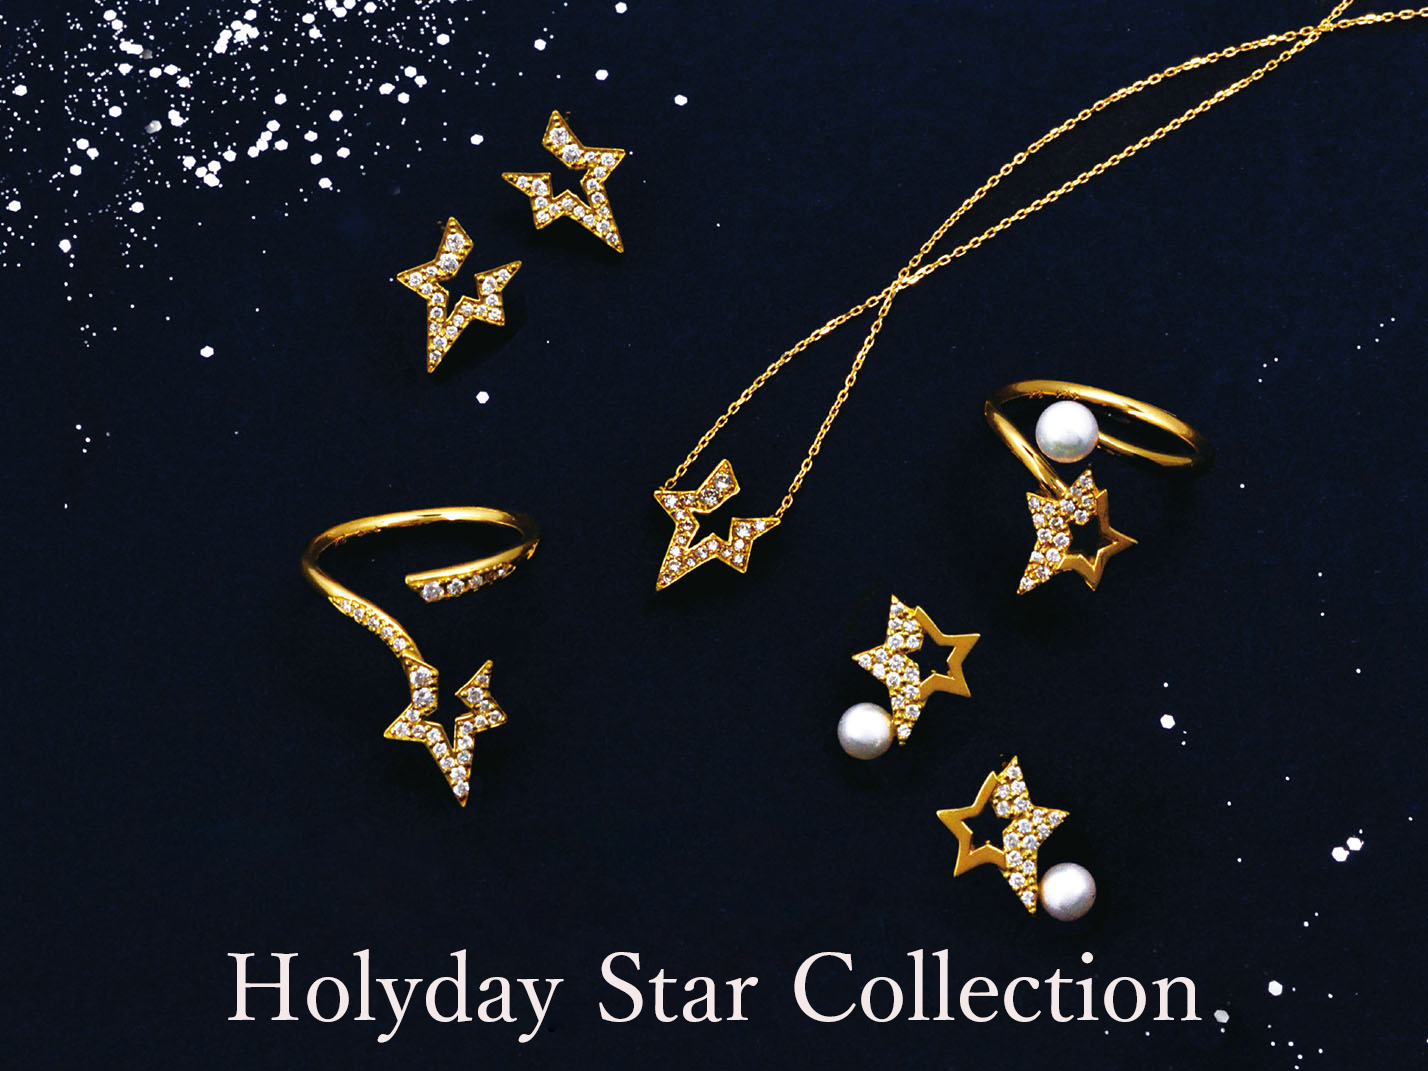 Holyday Star Collection